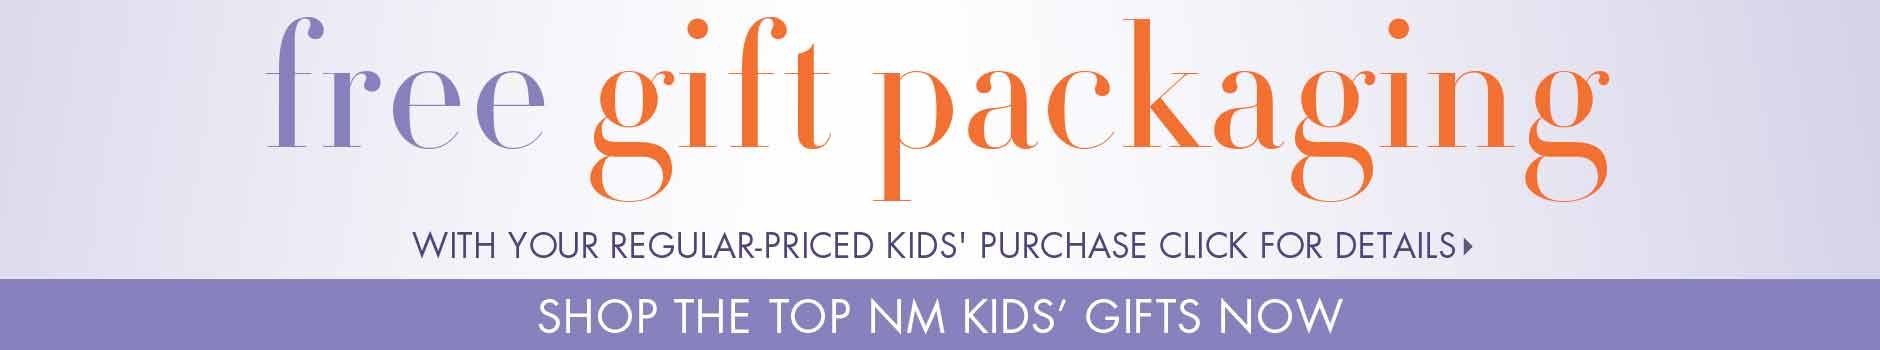 Free Gift Packaging: With kid's Purchase